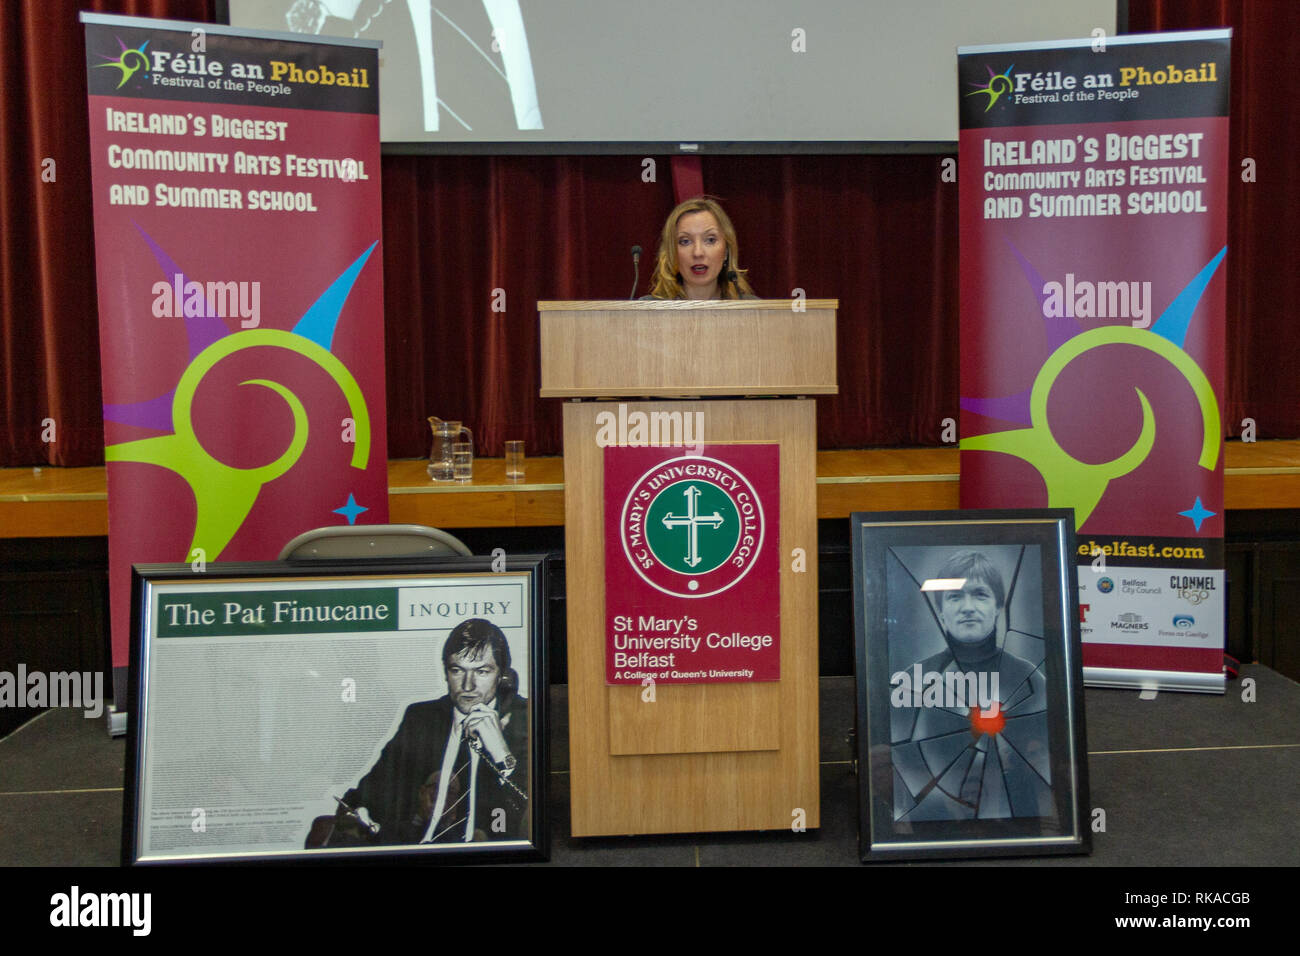 """St Marys College, Falls Road, Belfast, Northern Ireland, UK. 10th February 2019. Katherine Finucane (Daughter of murdered Human Rights lawyer Pat Finucan) Addressing a large crowd at """"A Community Reflects"""" on the murder of Pat Finucane. The Family are still waiting for a Full Public enquiry in to the Solicitors Murder. Credit: Bonzo/Alamy Live News Stock Photo"""